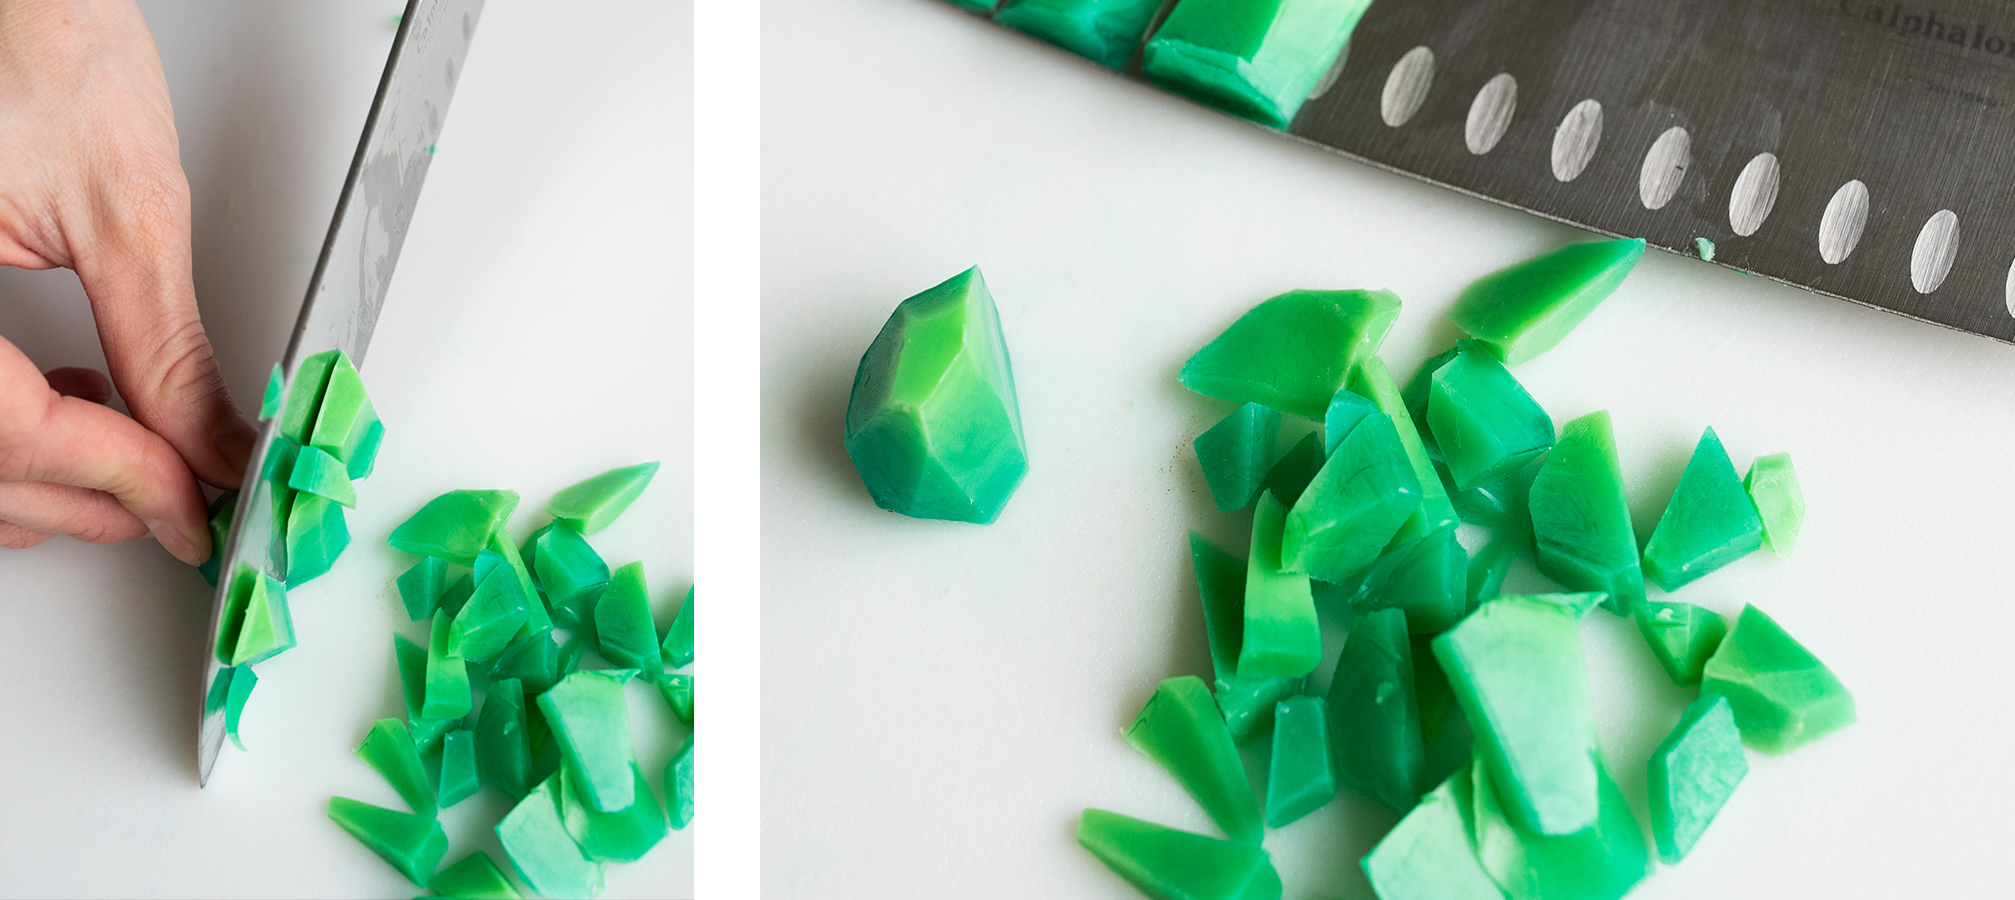 Cutting green melt and pour soap into small pieces